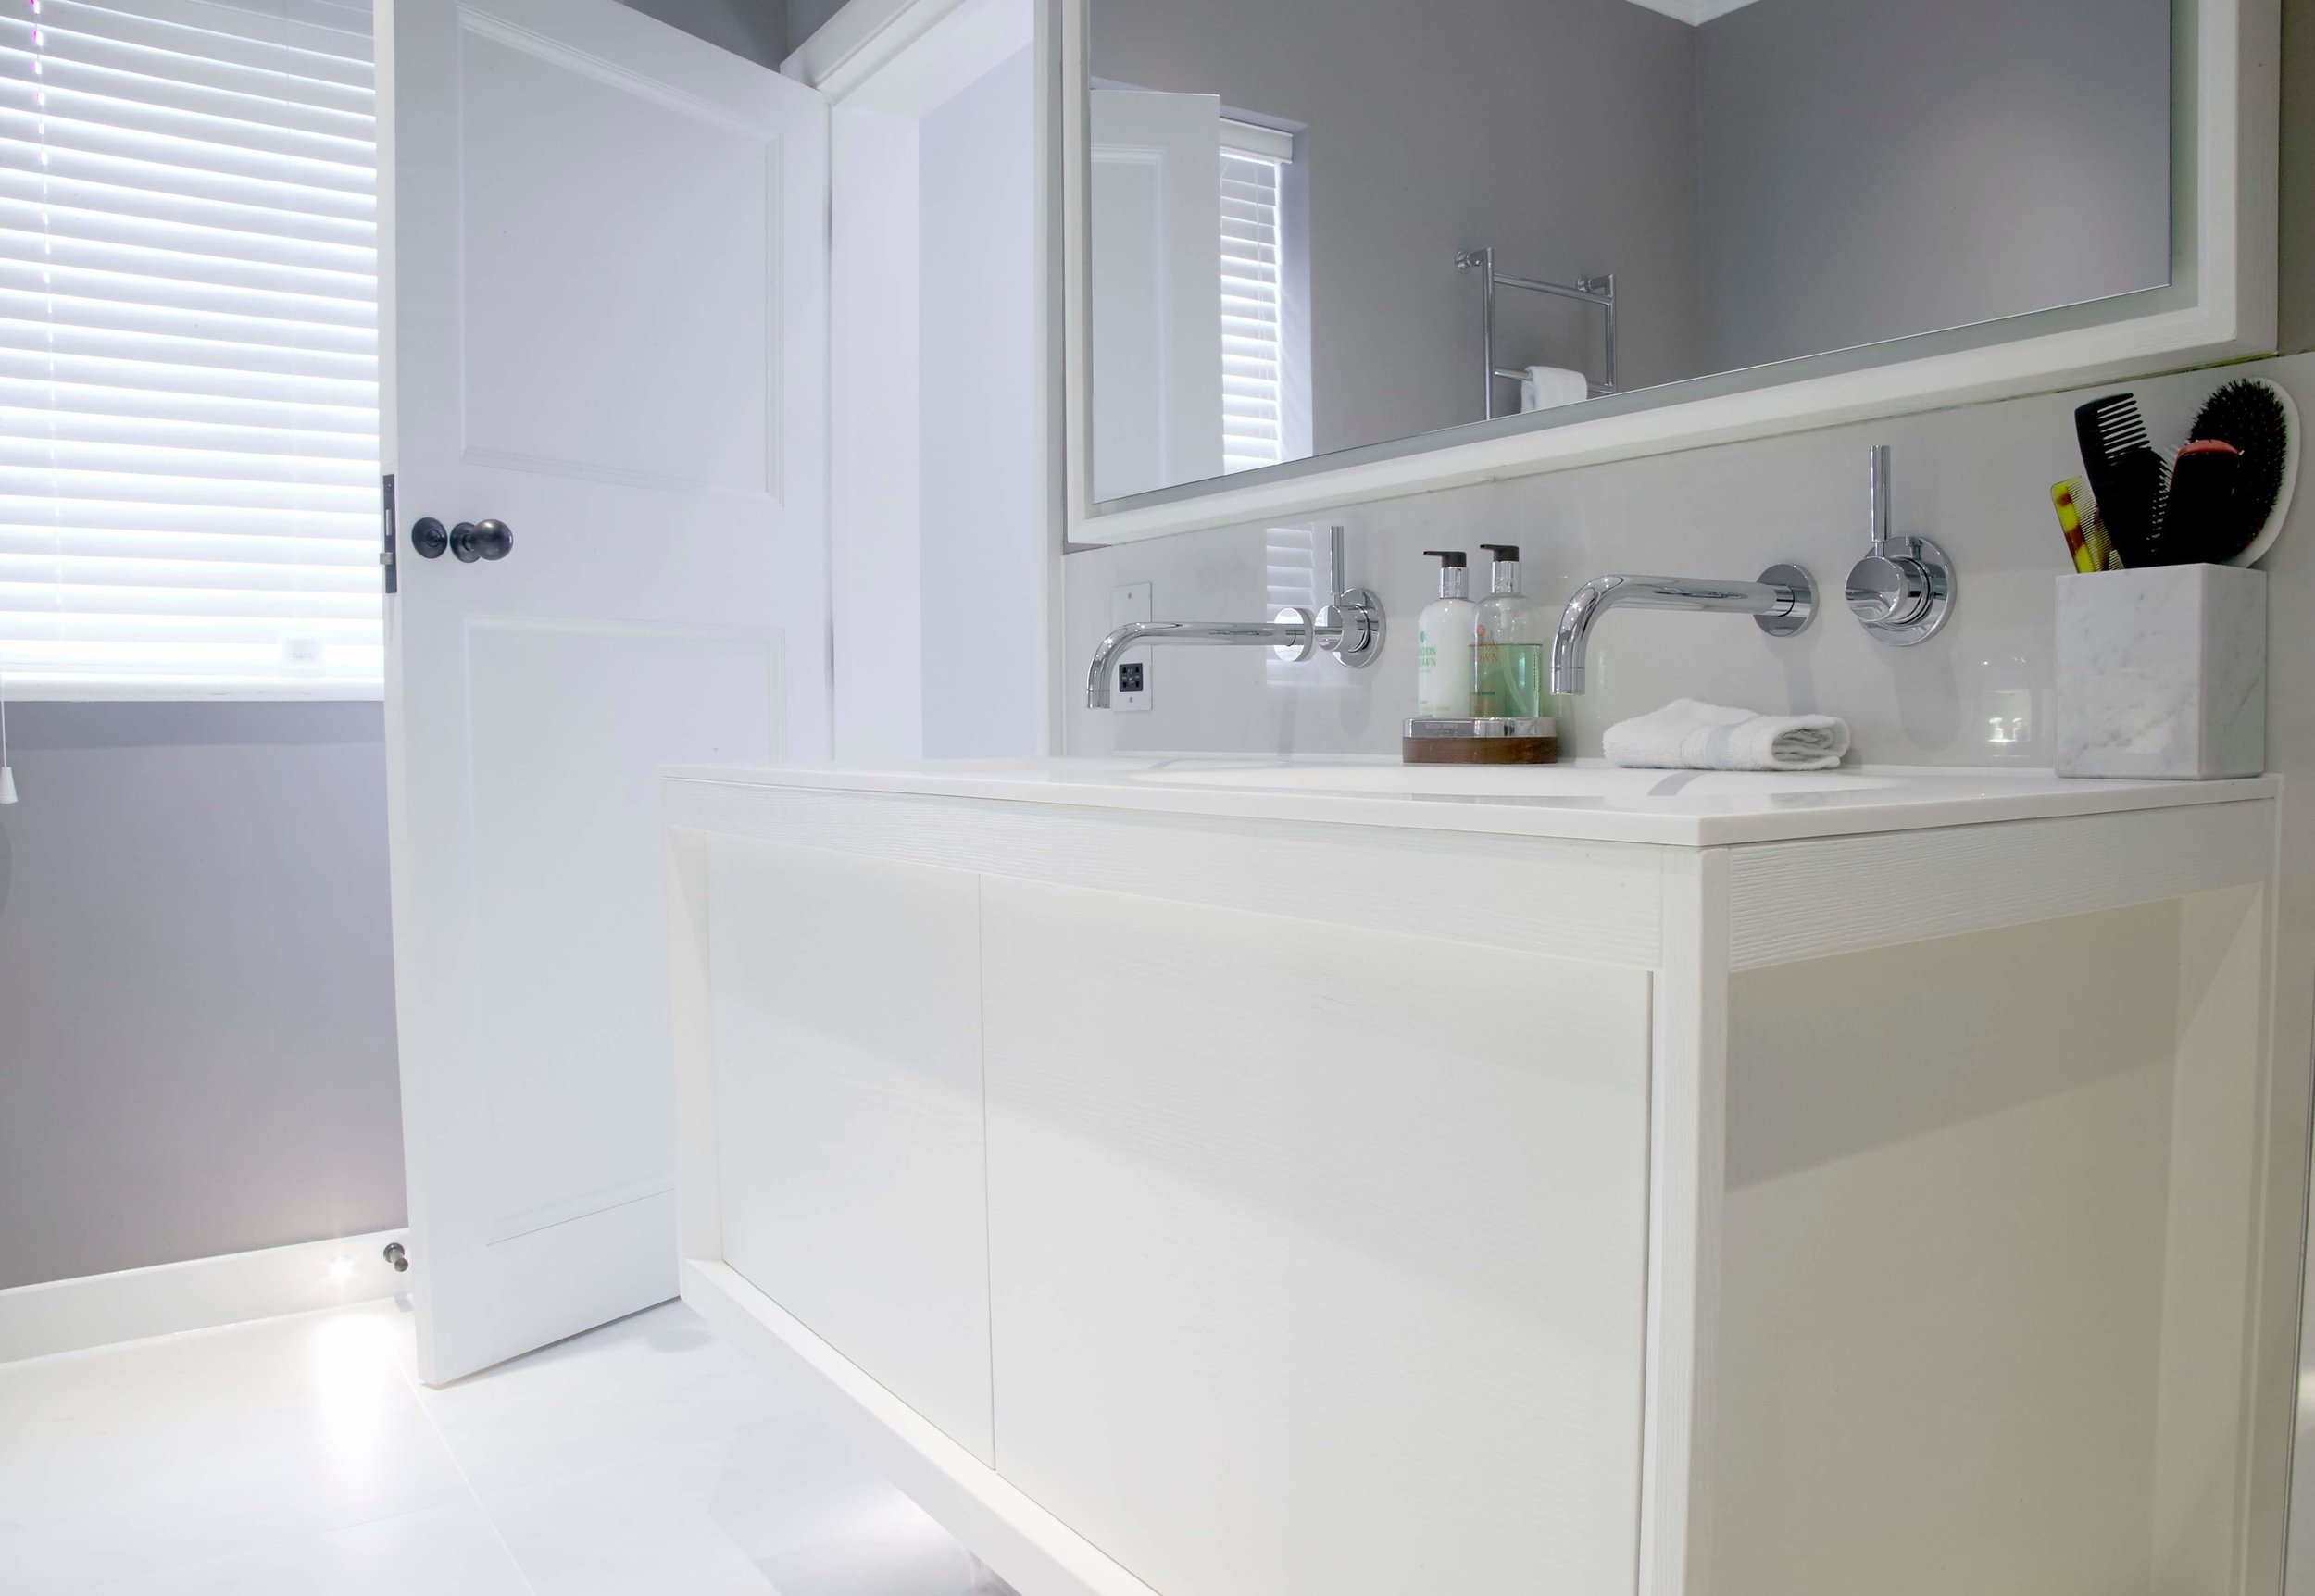 Bathroom Home Interior Design West London Home Interior Design The Design House Uk Cambridge